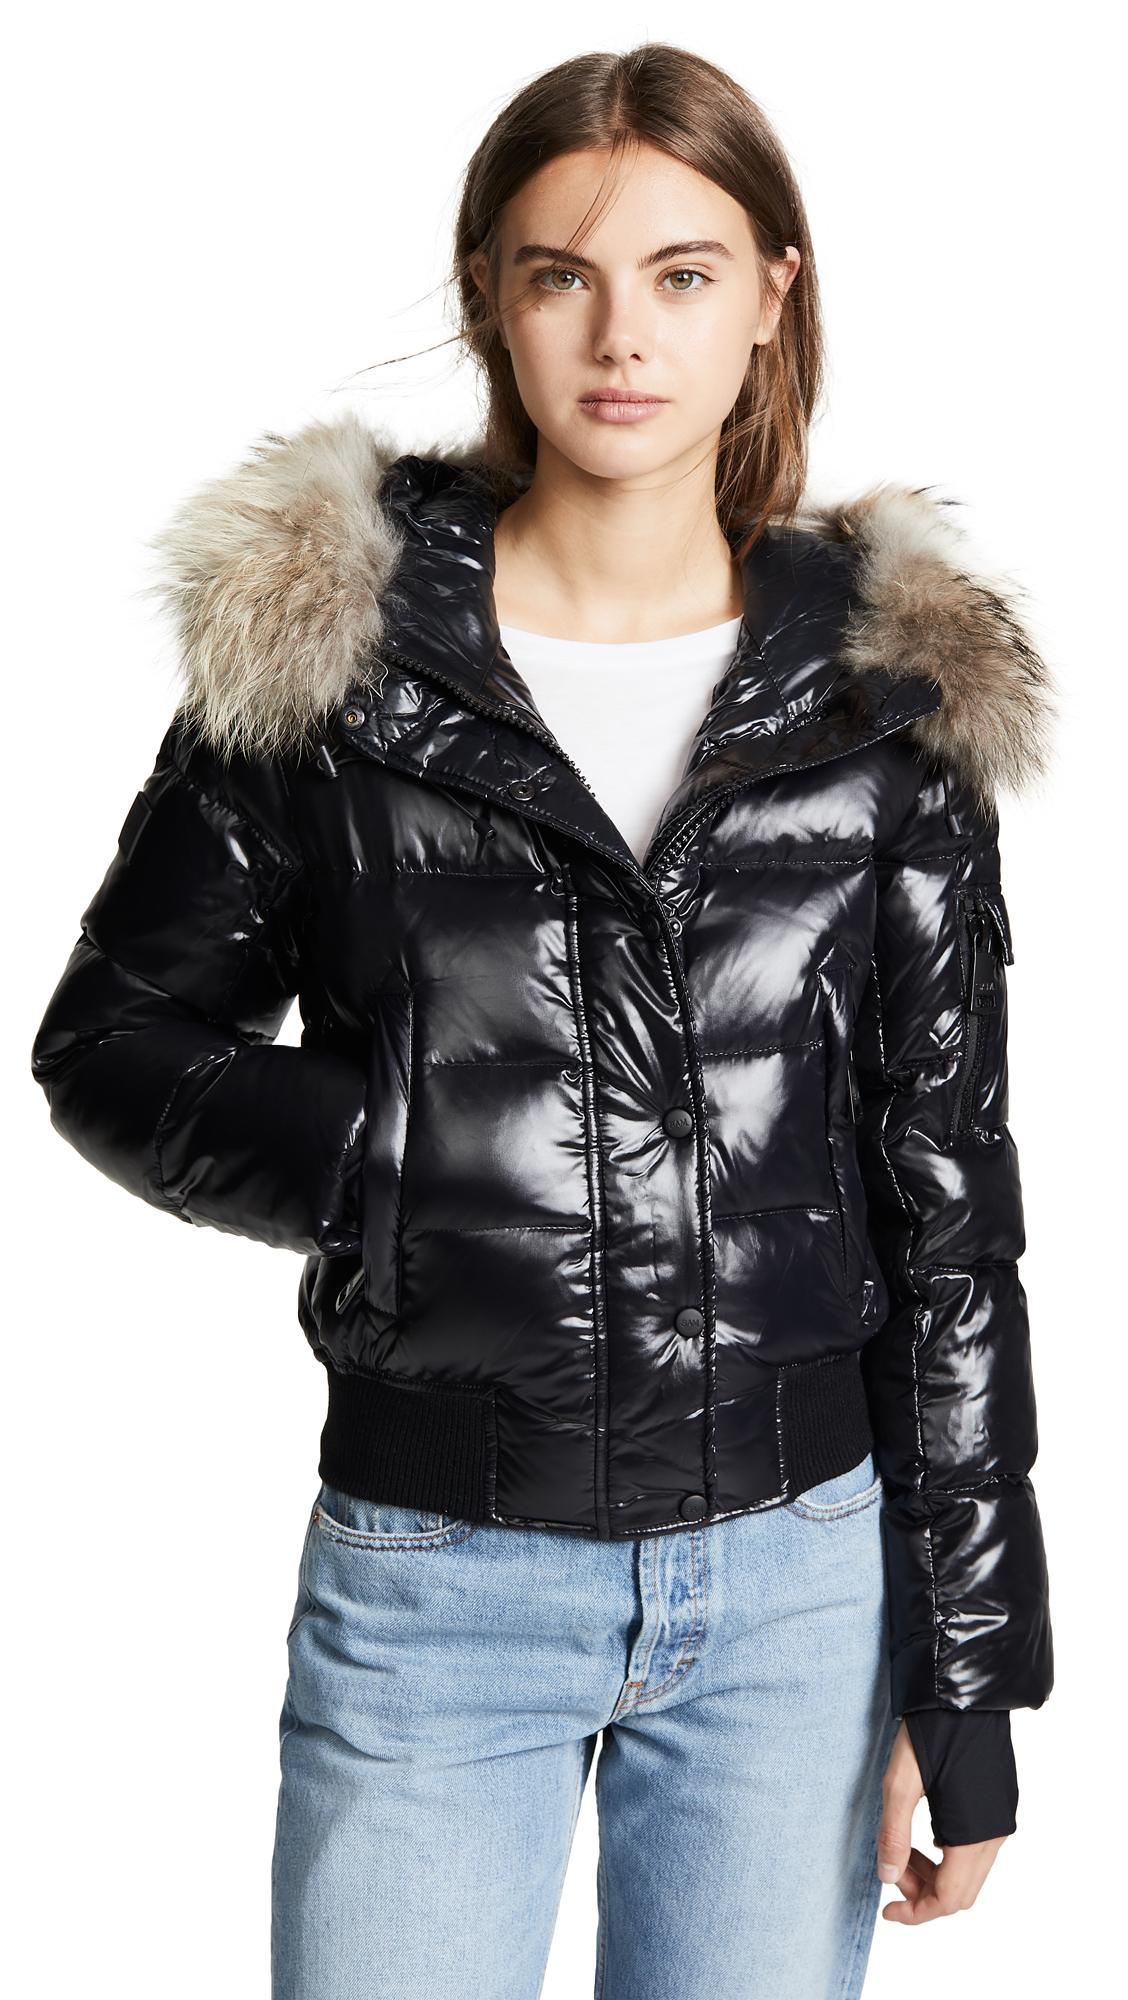 f8c26c841706 Sam. Skyler Short Down Jacket With Fur In Jet